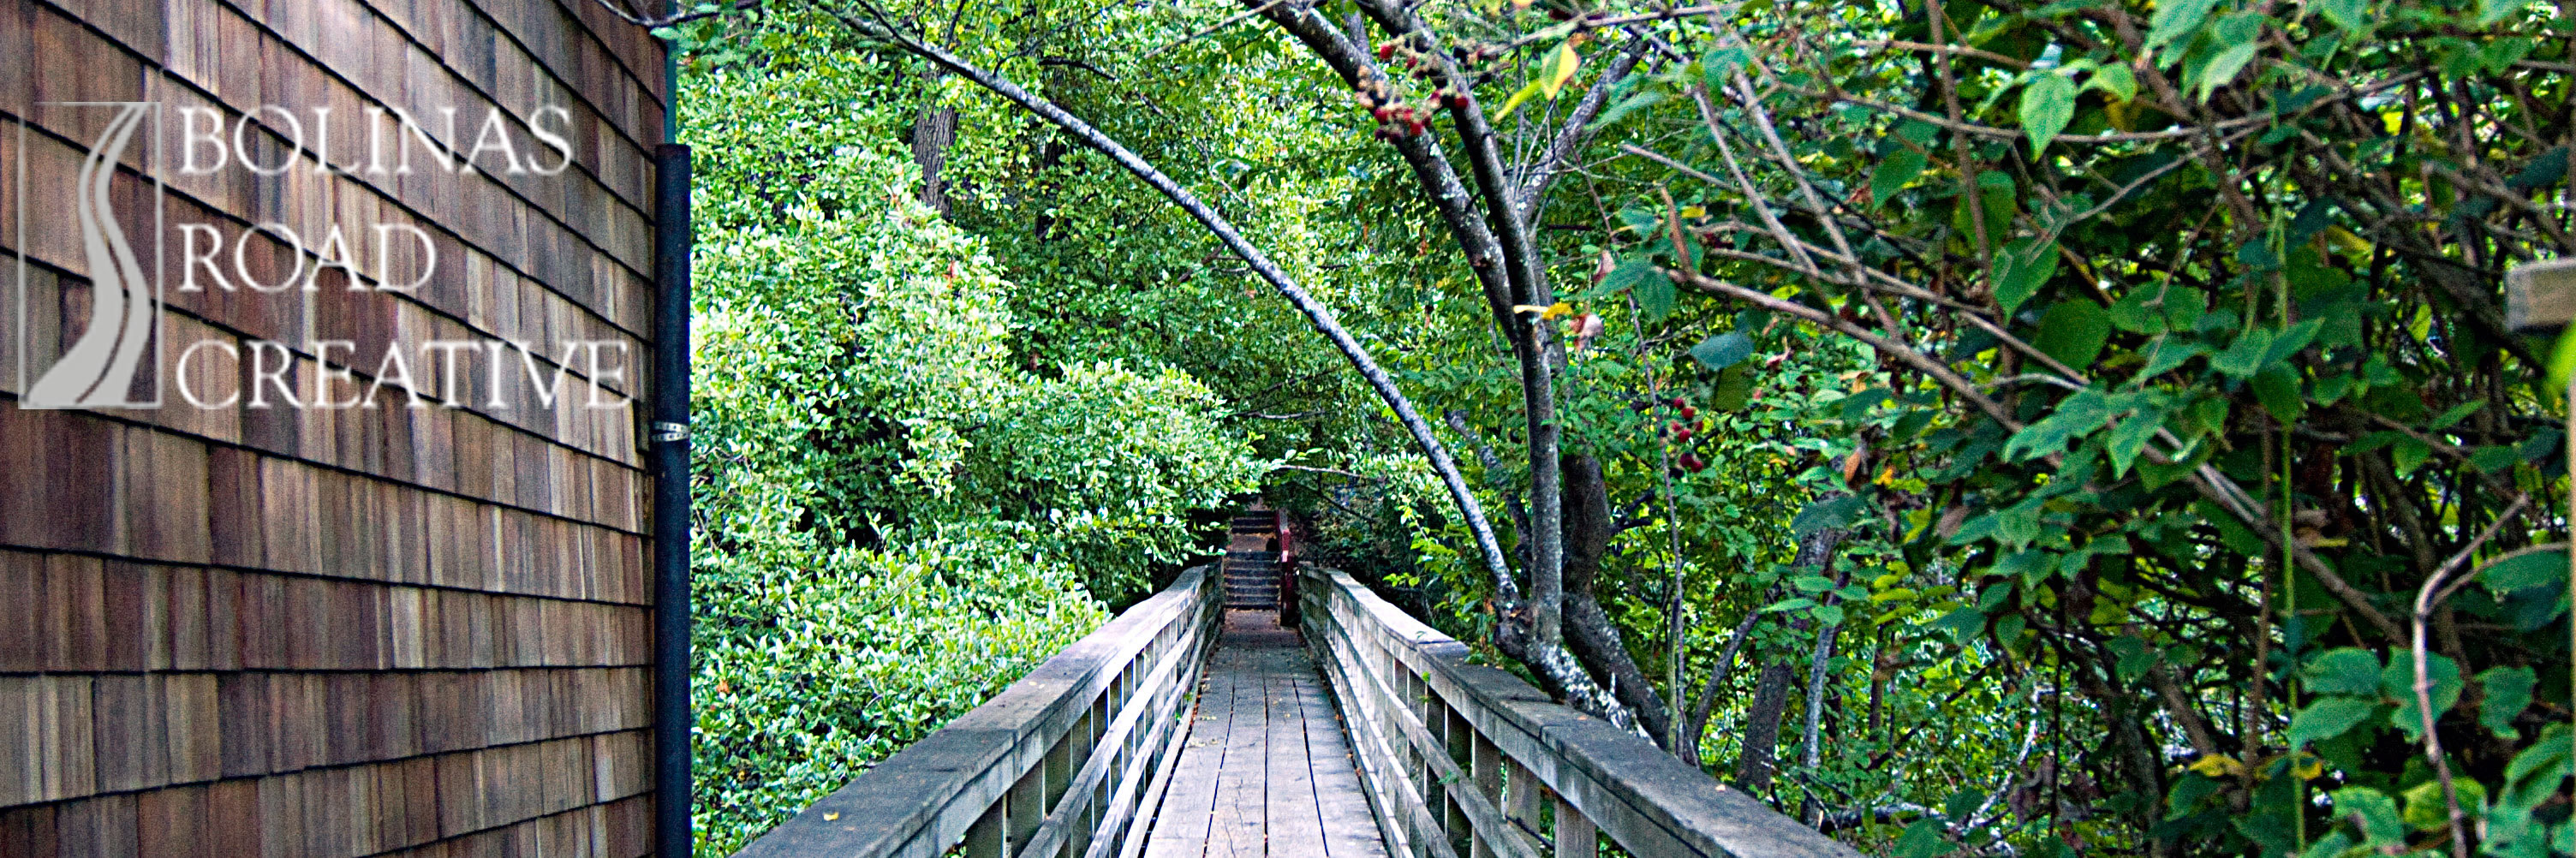 A wooden foot bridges shows a clear path over a strean and through a dense cluster of trees.